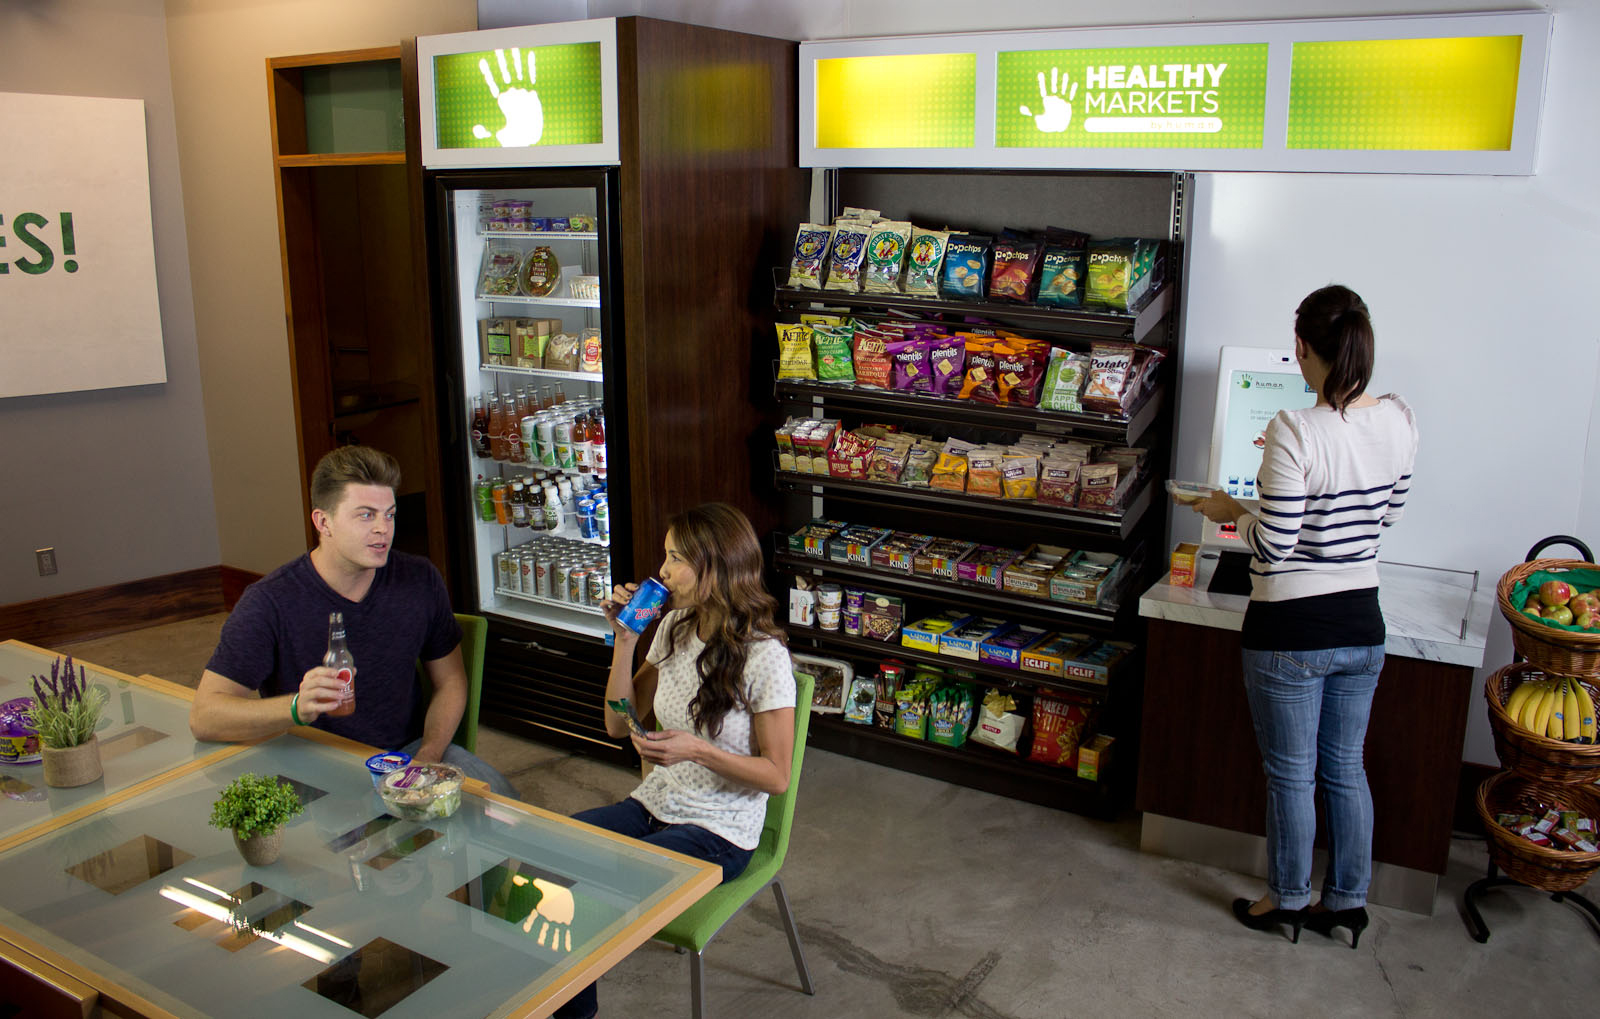 Human Healthy Markets Launch To Boost Employee Wellness